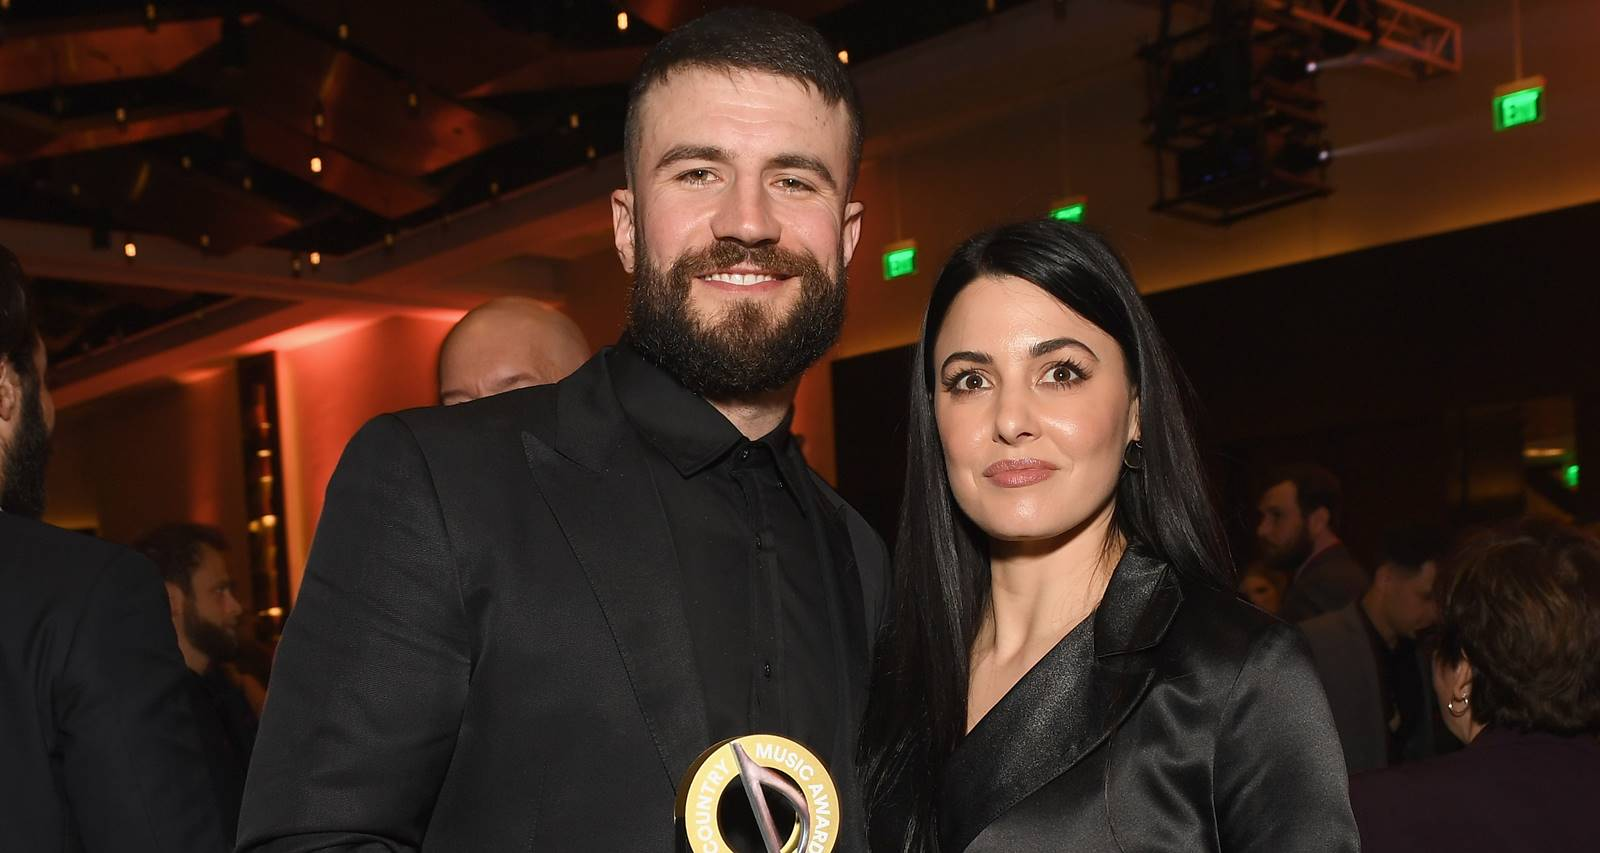 Hannah Lee Fowler Wiki, Age, Family, Parents and Facts To Know About Sam Hunt's Wife